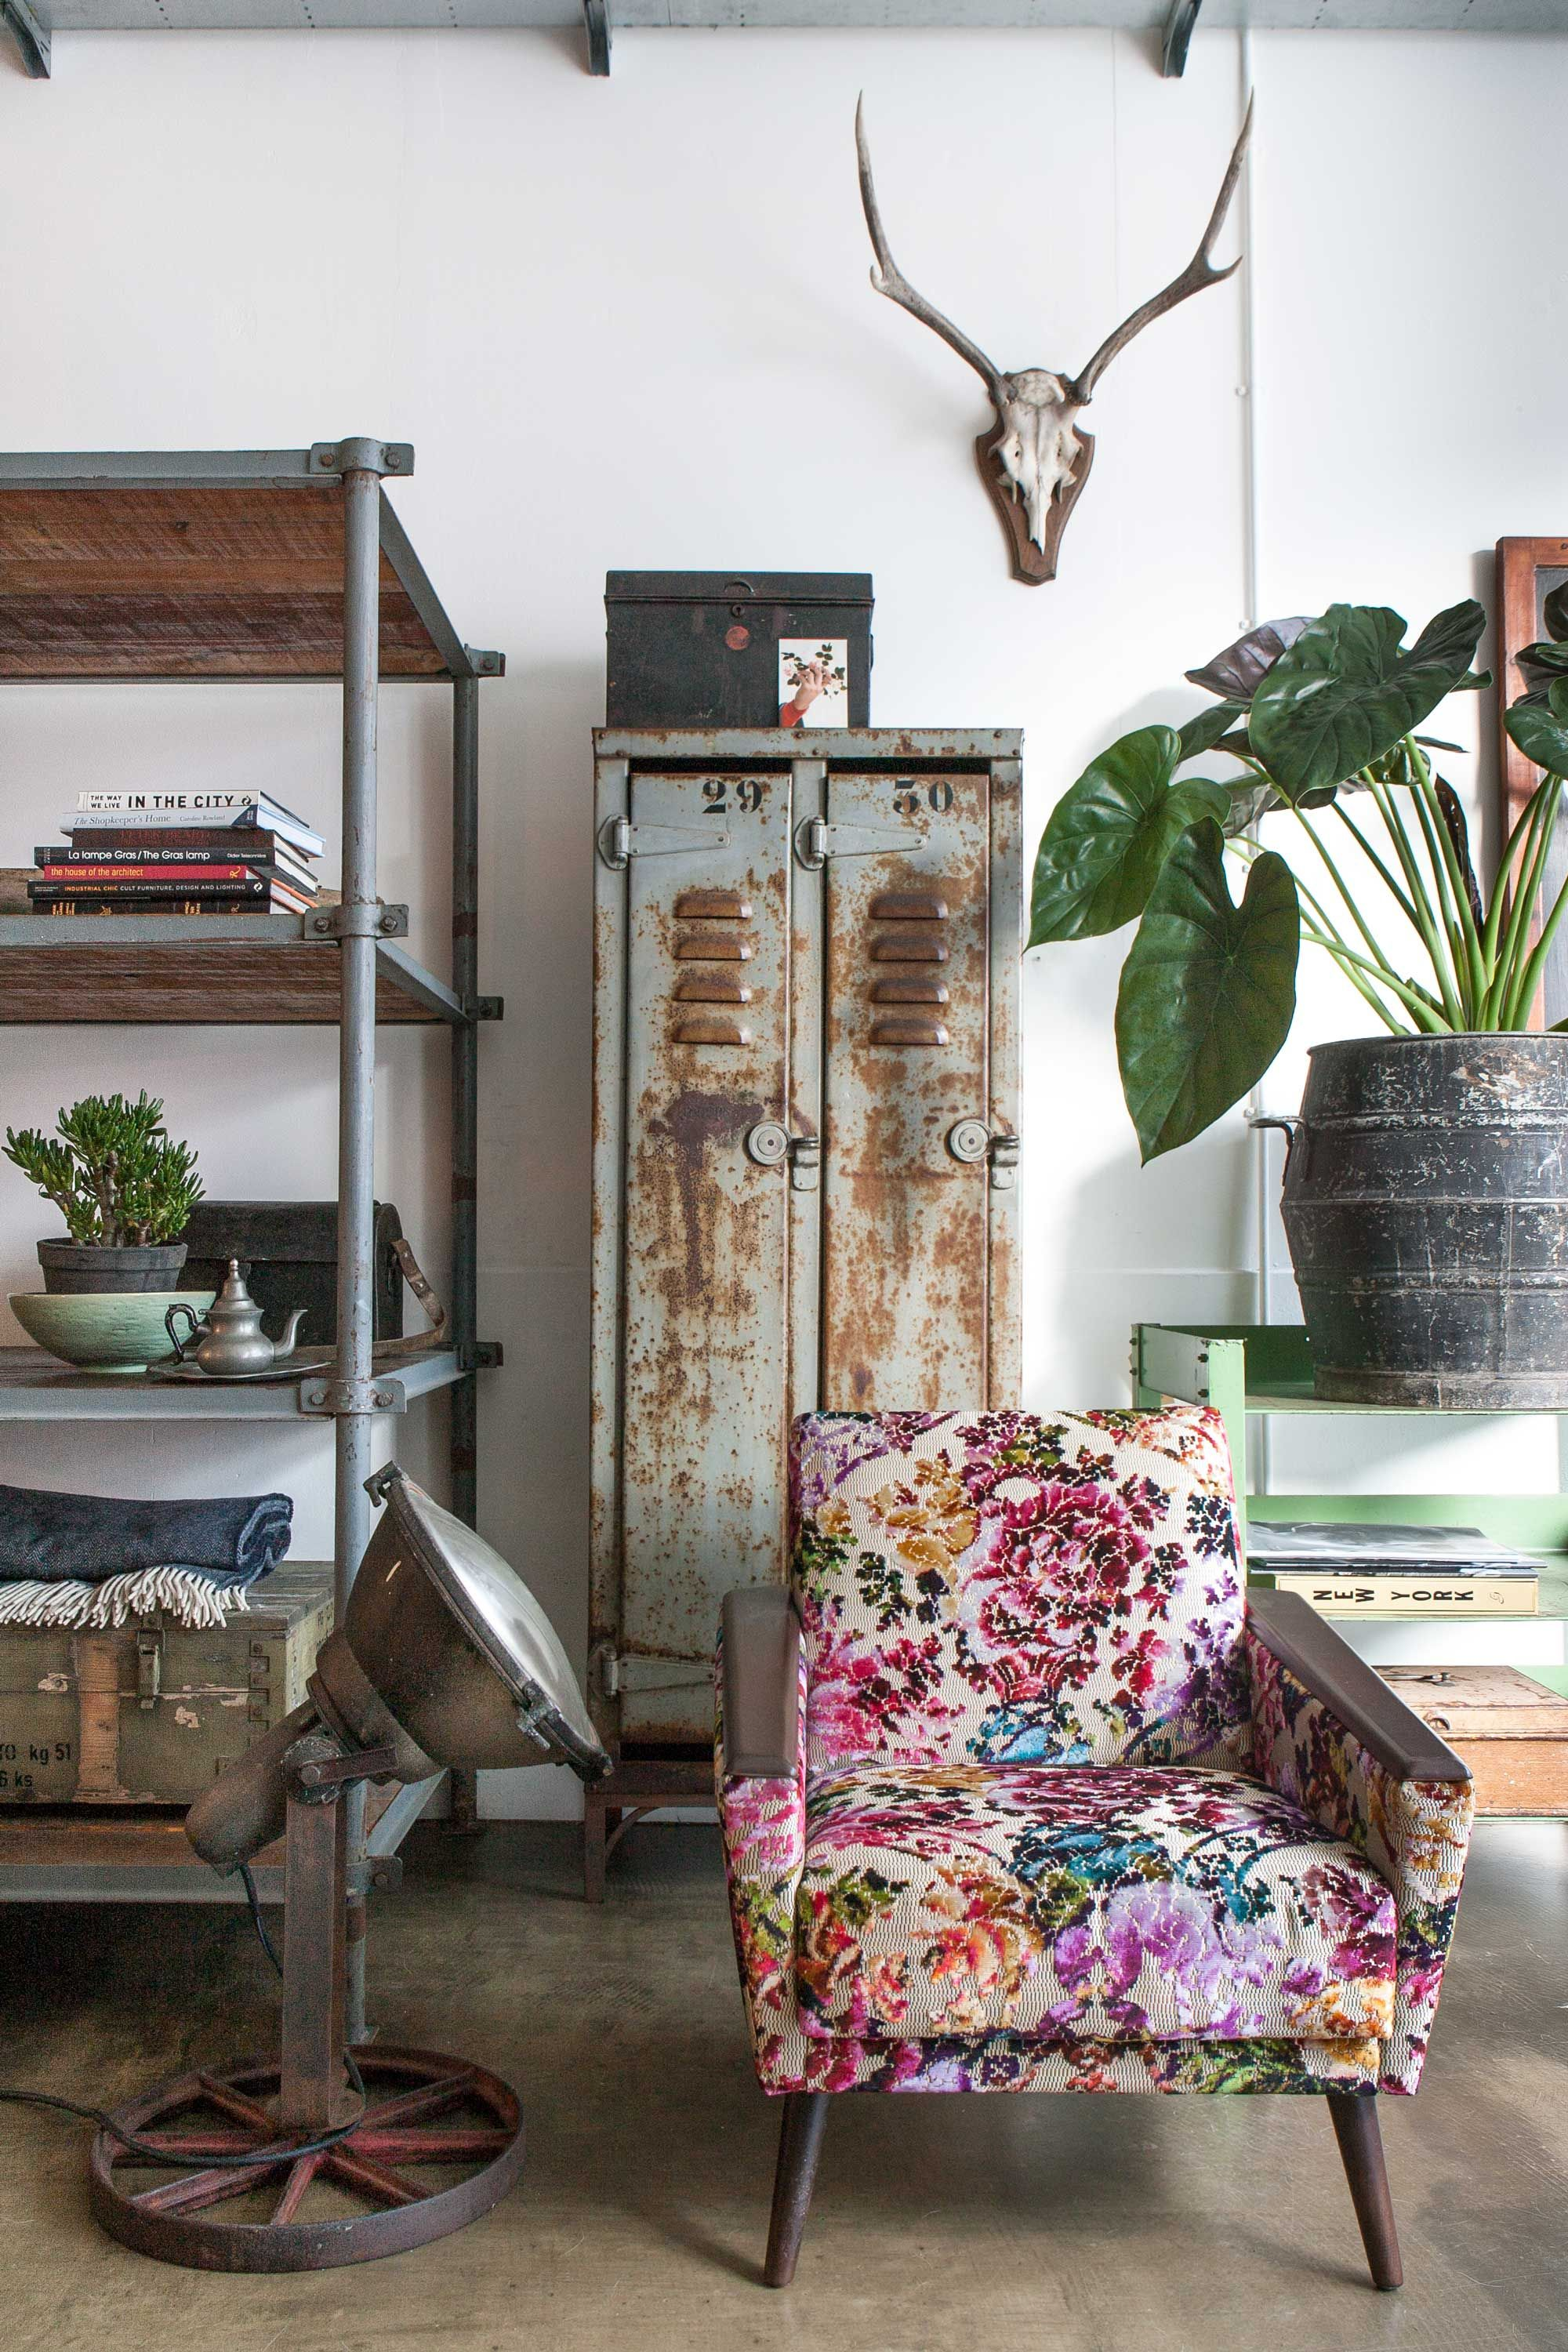 How To Furnish House With Modern Furniture: 10 Modern Ways To Decorate With Granny Florals